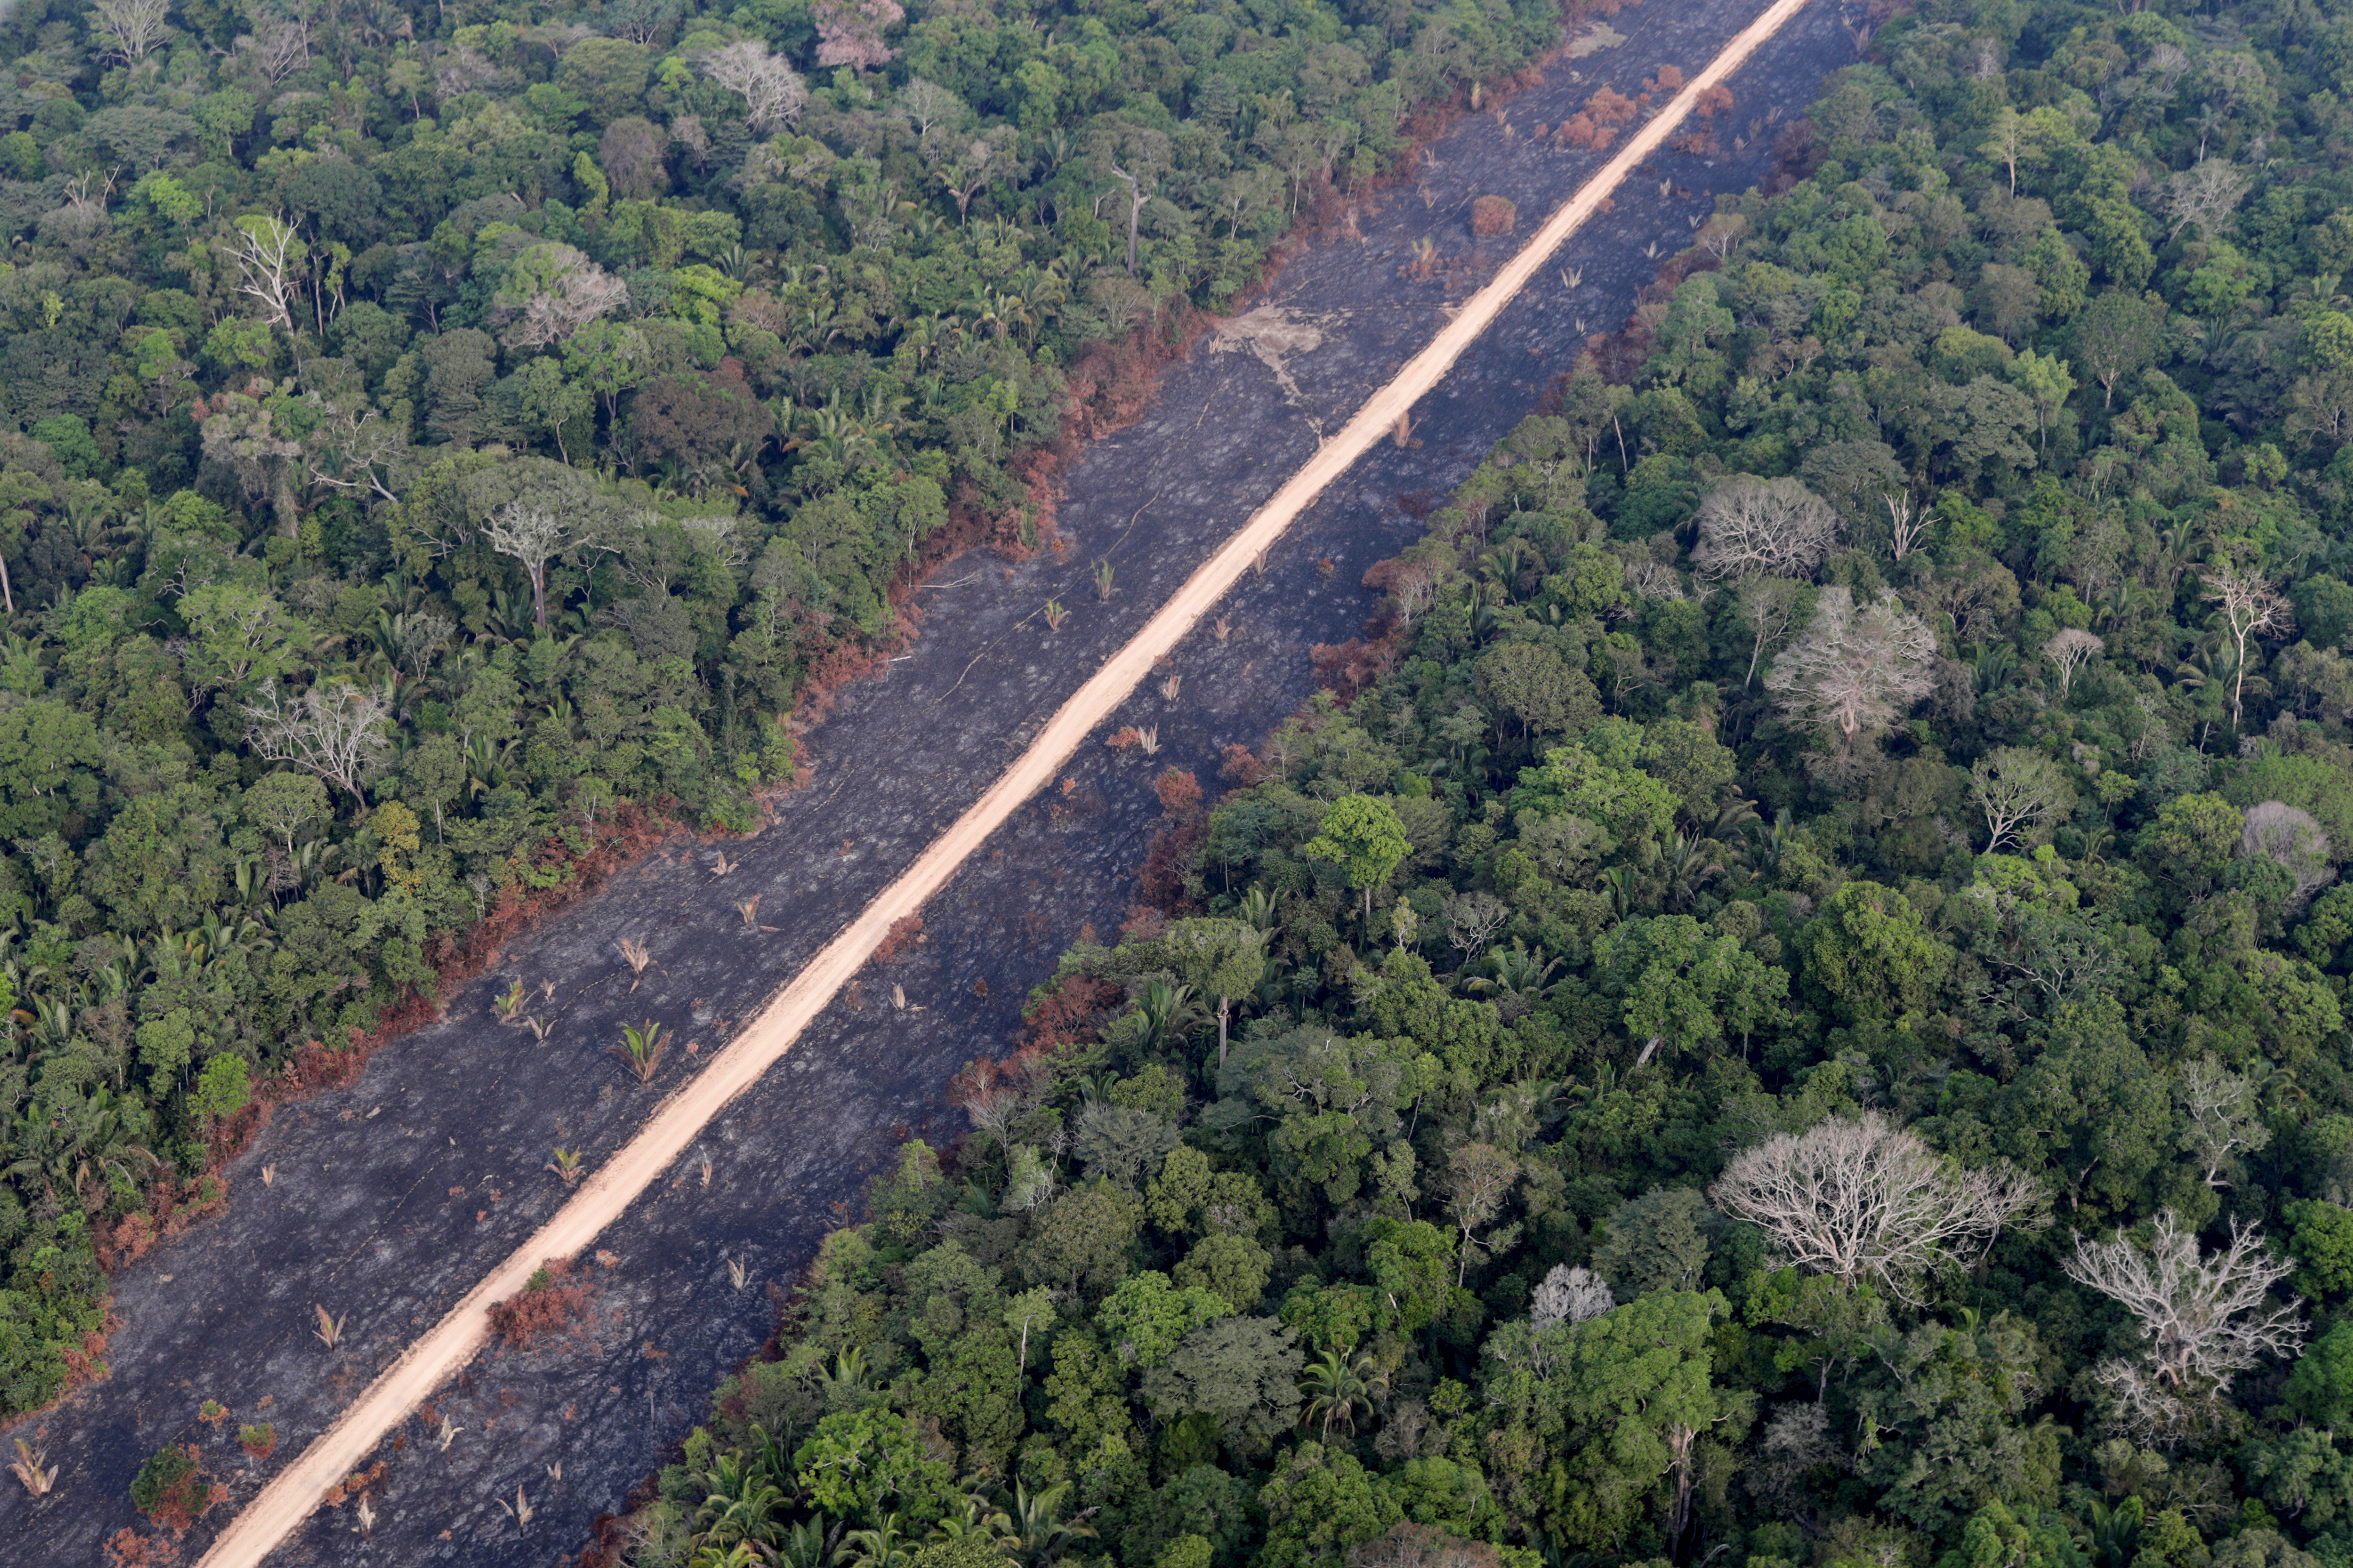 "A road runs through a tract of burnt Amazon jungle near Porto Velho, Rondonia State, Brazil, August 14, 2020. Creatures of the Amazon, one of the earth's most biodiverse habitats, face an ever-growing threat as loggers and farms advance further and further into the rainforest. REUTERS/Ueslei Marcelino   SEARCH ""BRAZIL ANIMALS"" FOR THIS STORY. SEARCH ""WIDER IMAGE"" FOR ALL STORIES - RC2OTI9HSKR5"